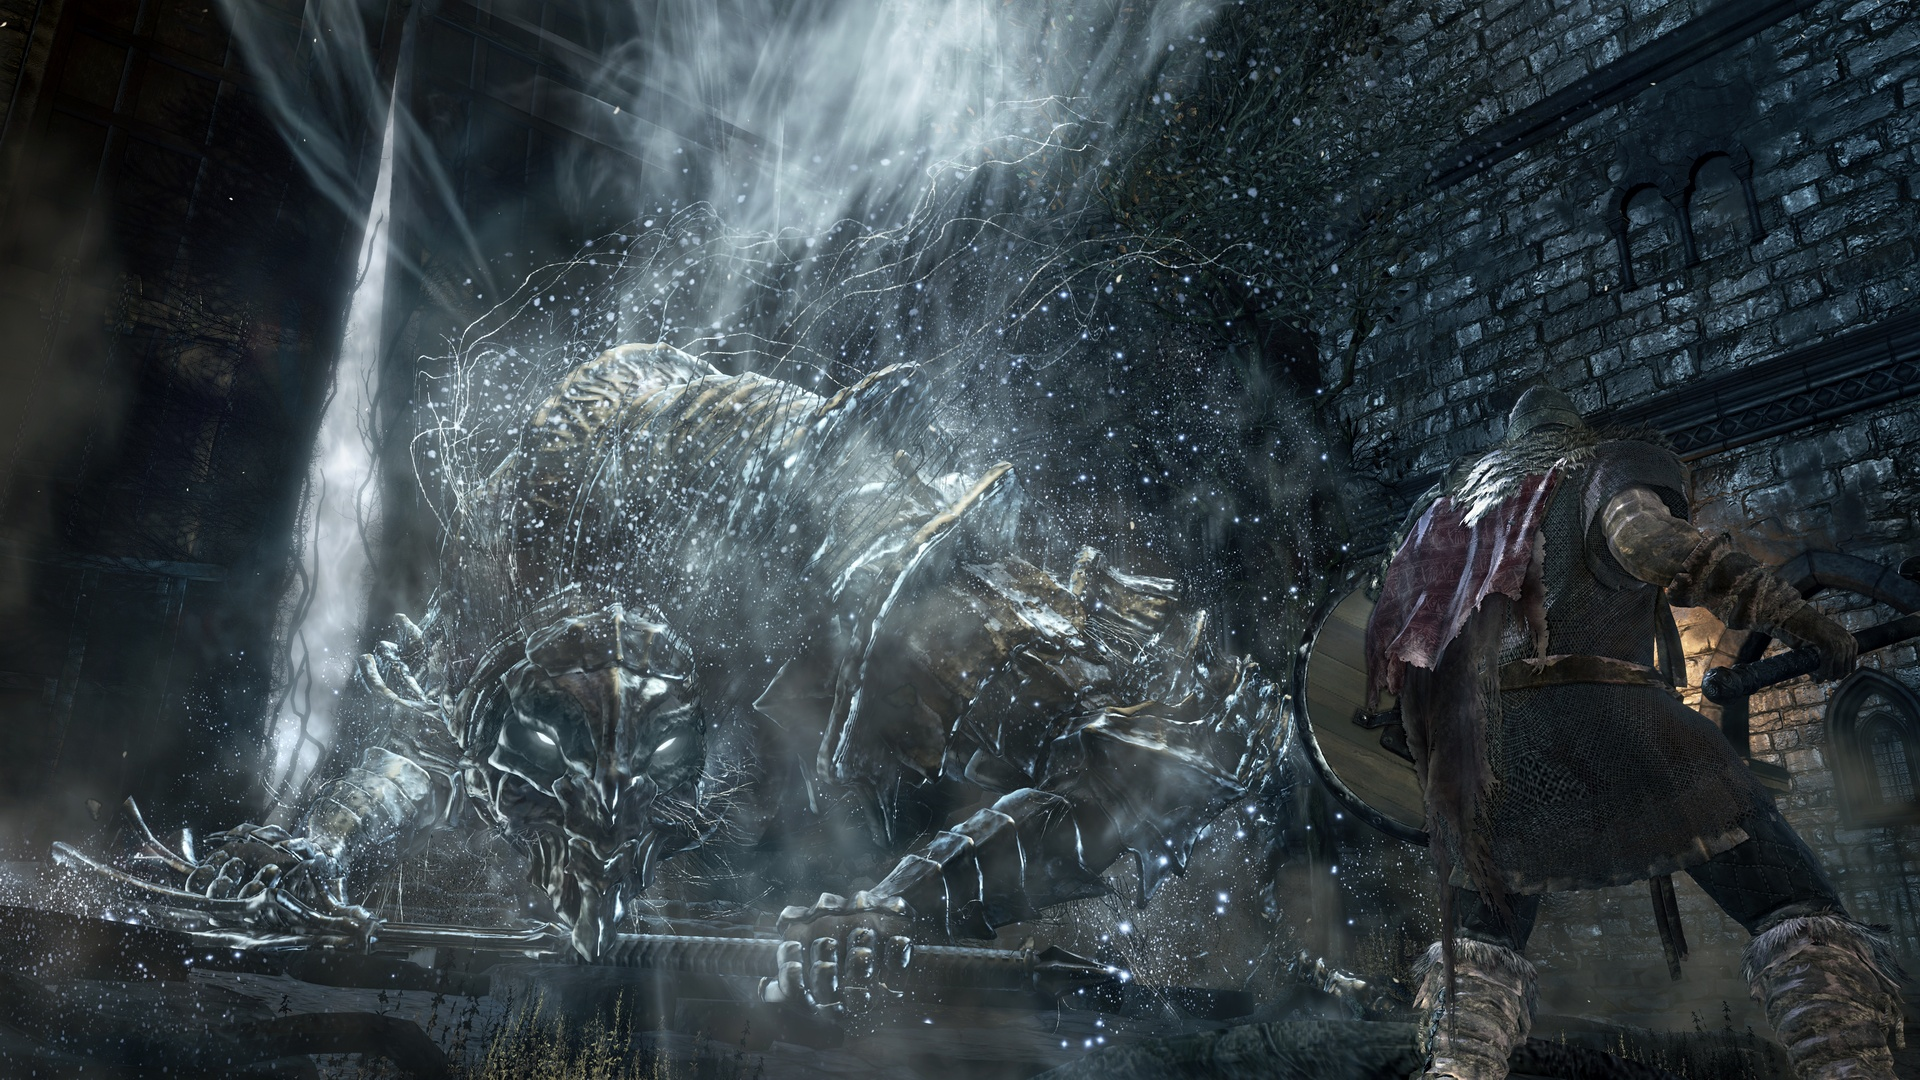 Dark Souls 3 Wallpapers High Quality Download Free